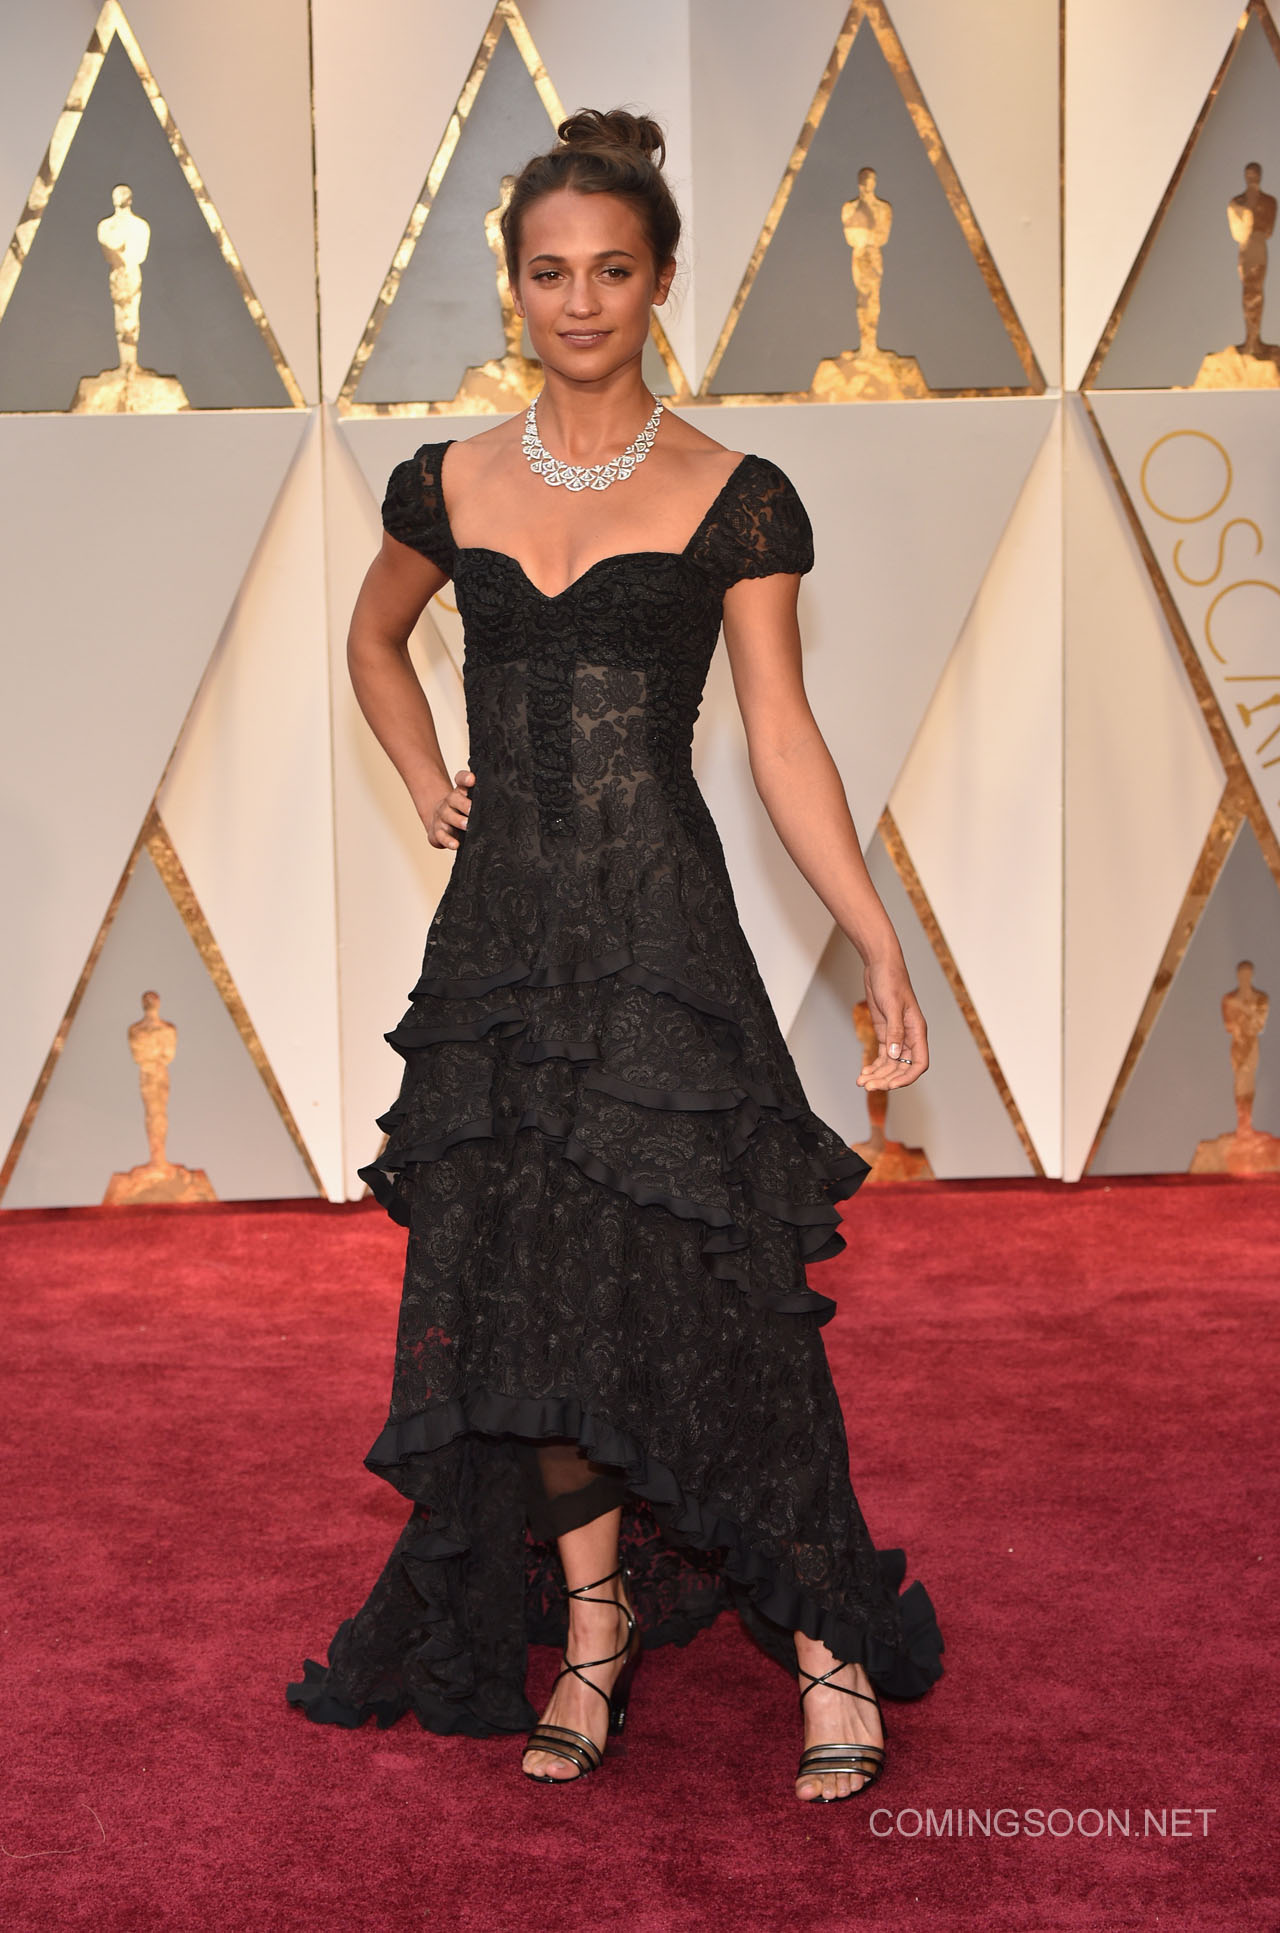 2017 Academy Award Nominees Streaming in addition Tyra Banks Gallery furthermore Congratulations Work Anniversary Quotes For together with Proud 20of 20you further 504964250. on oscar nominations 2017 announcement date